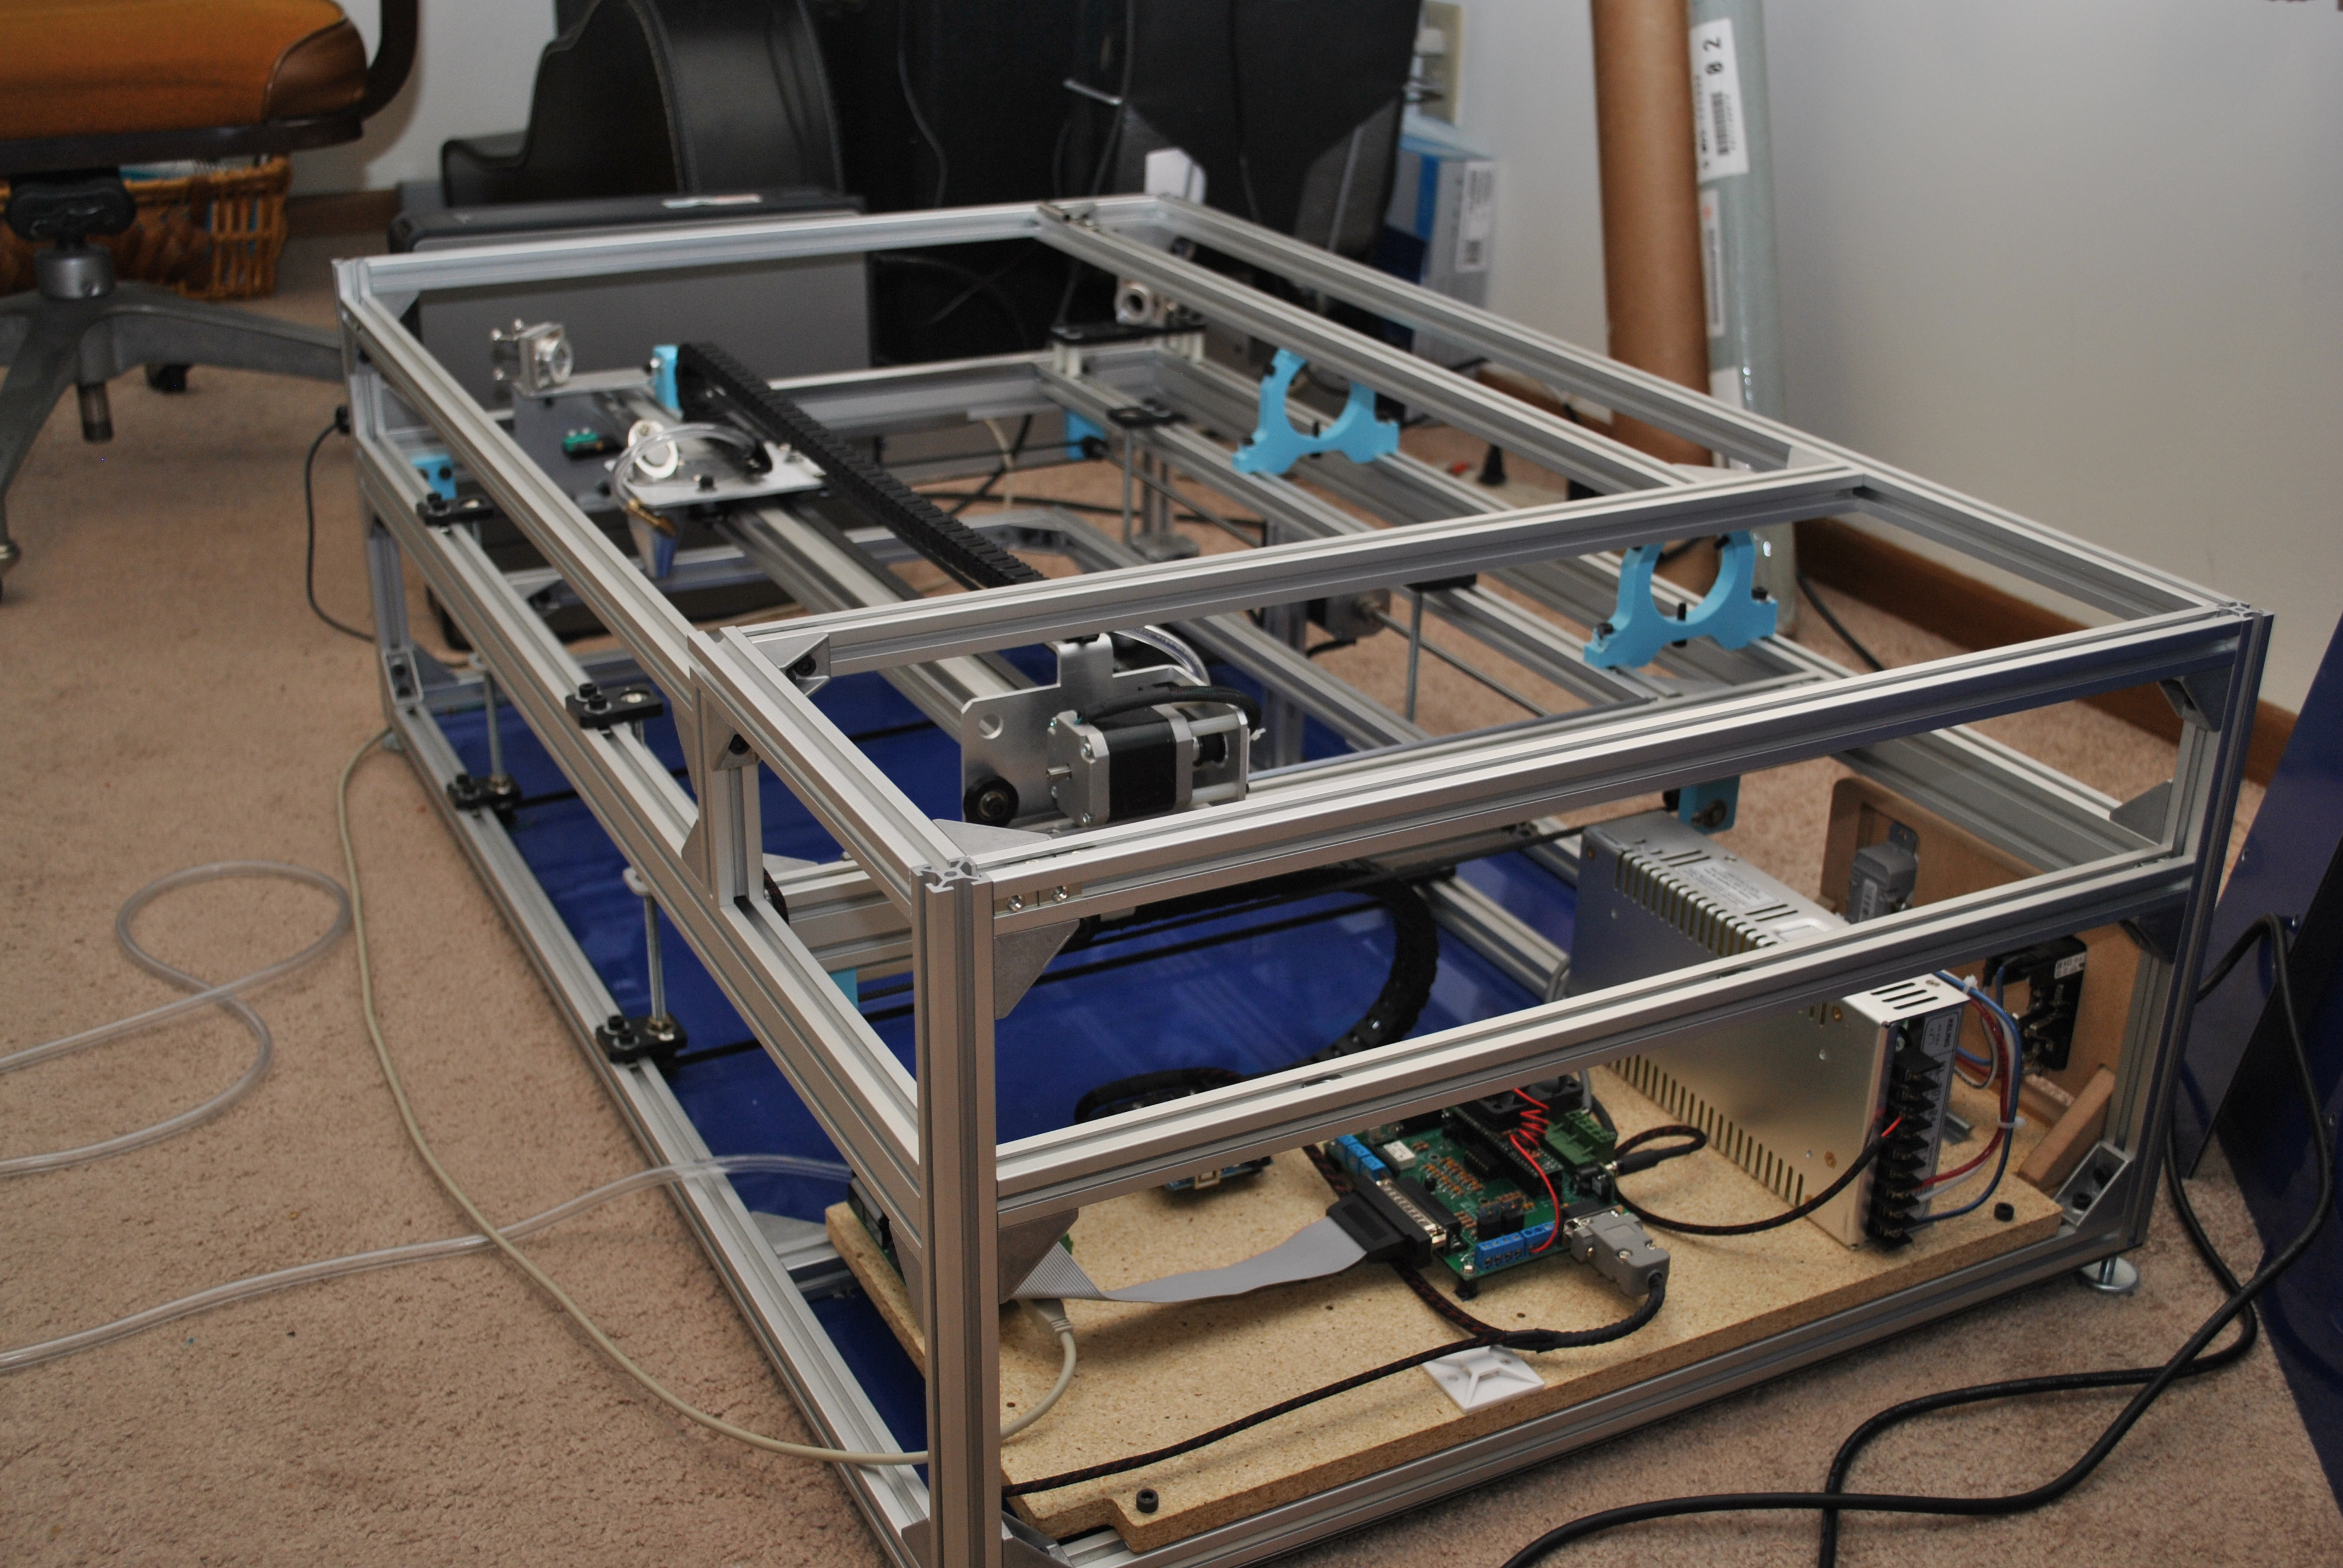 Best ideas about DIY Laser Cutter Kit . Save or Pin Diy Laser Cutter Kit Now.